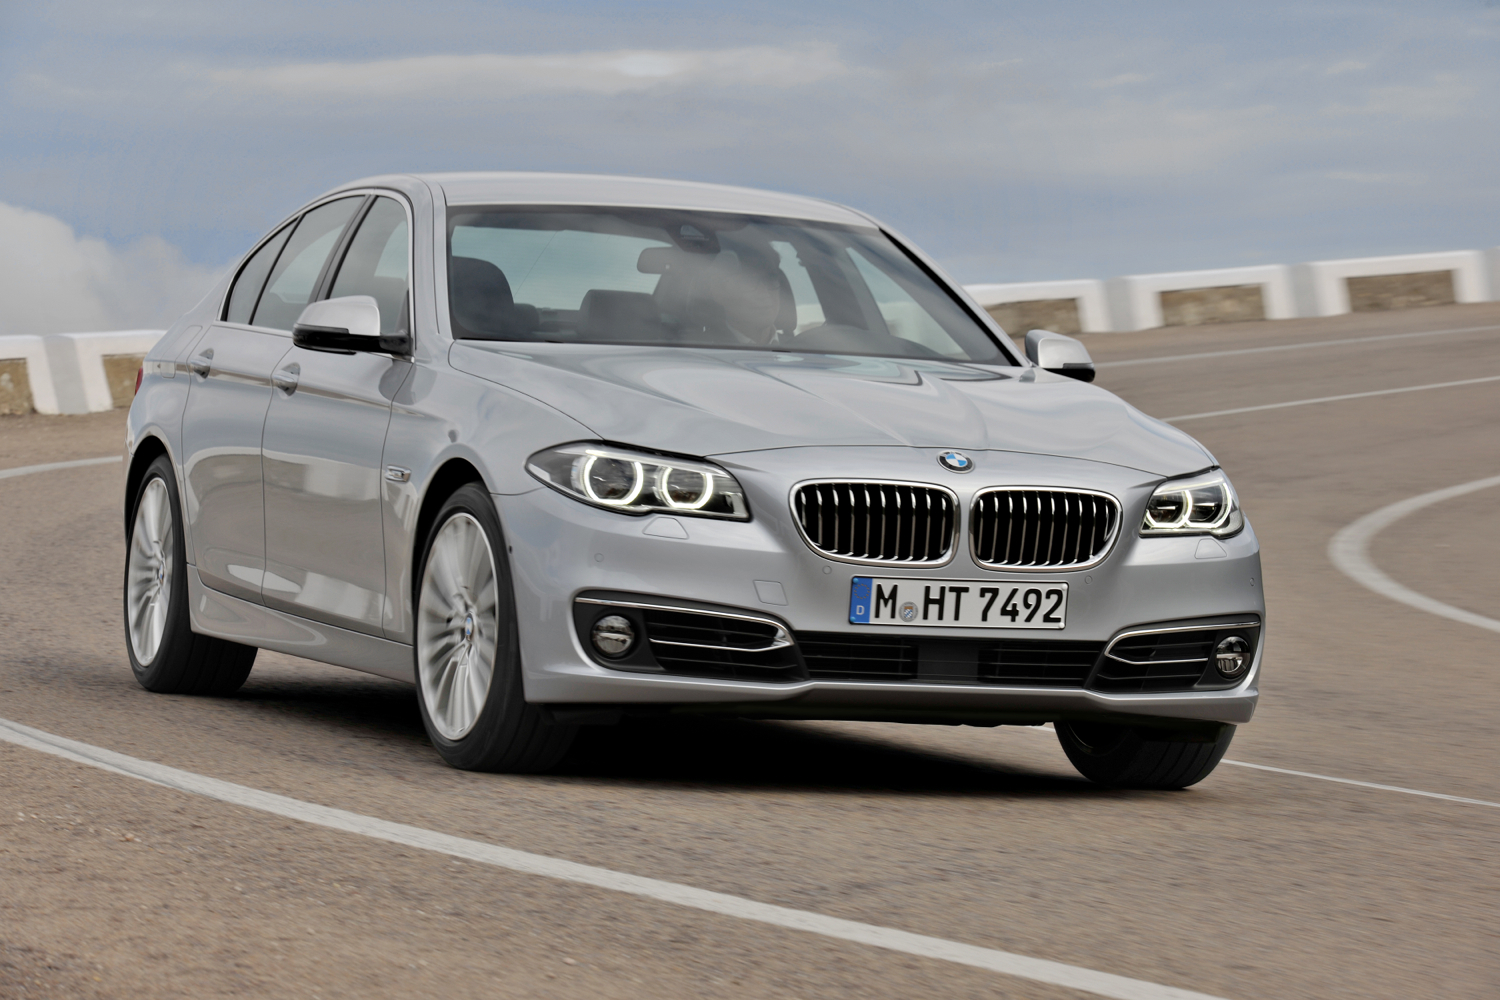 2015 bmw 535d named 39 diesel car of the year 39 by diesel. Black Bedroom Furniture Sets. Home Design Ideas